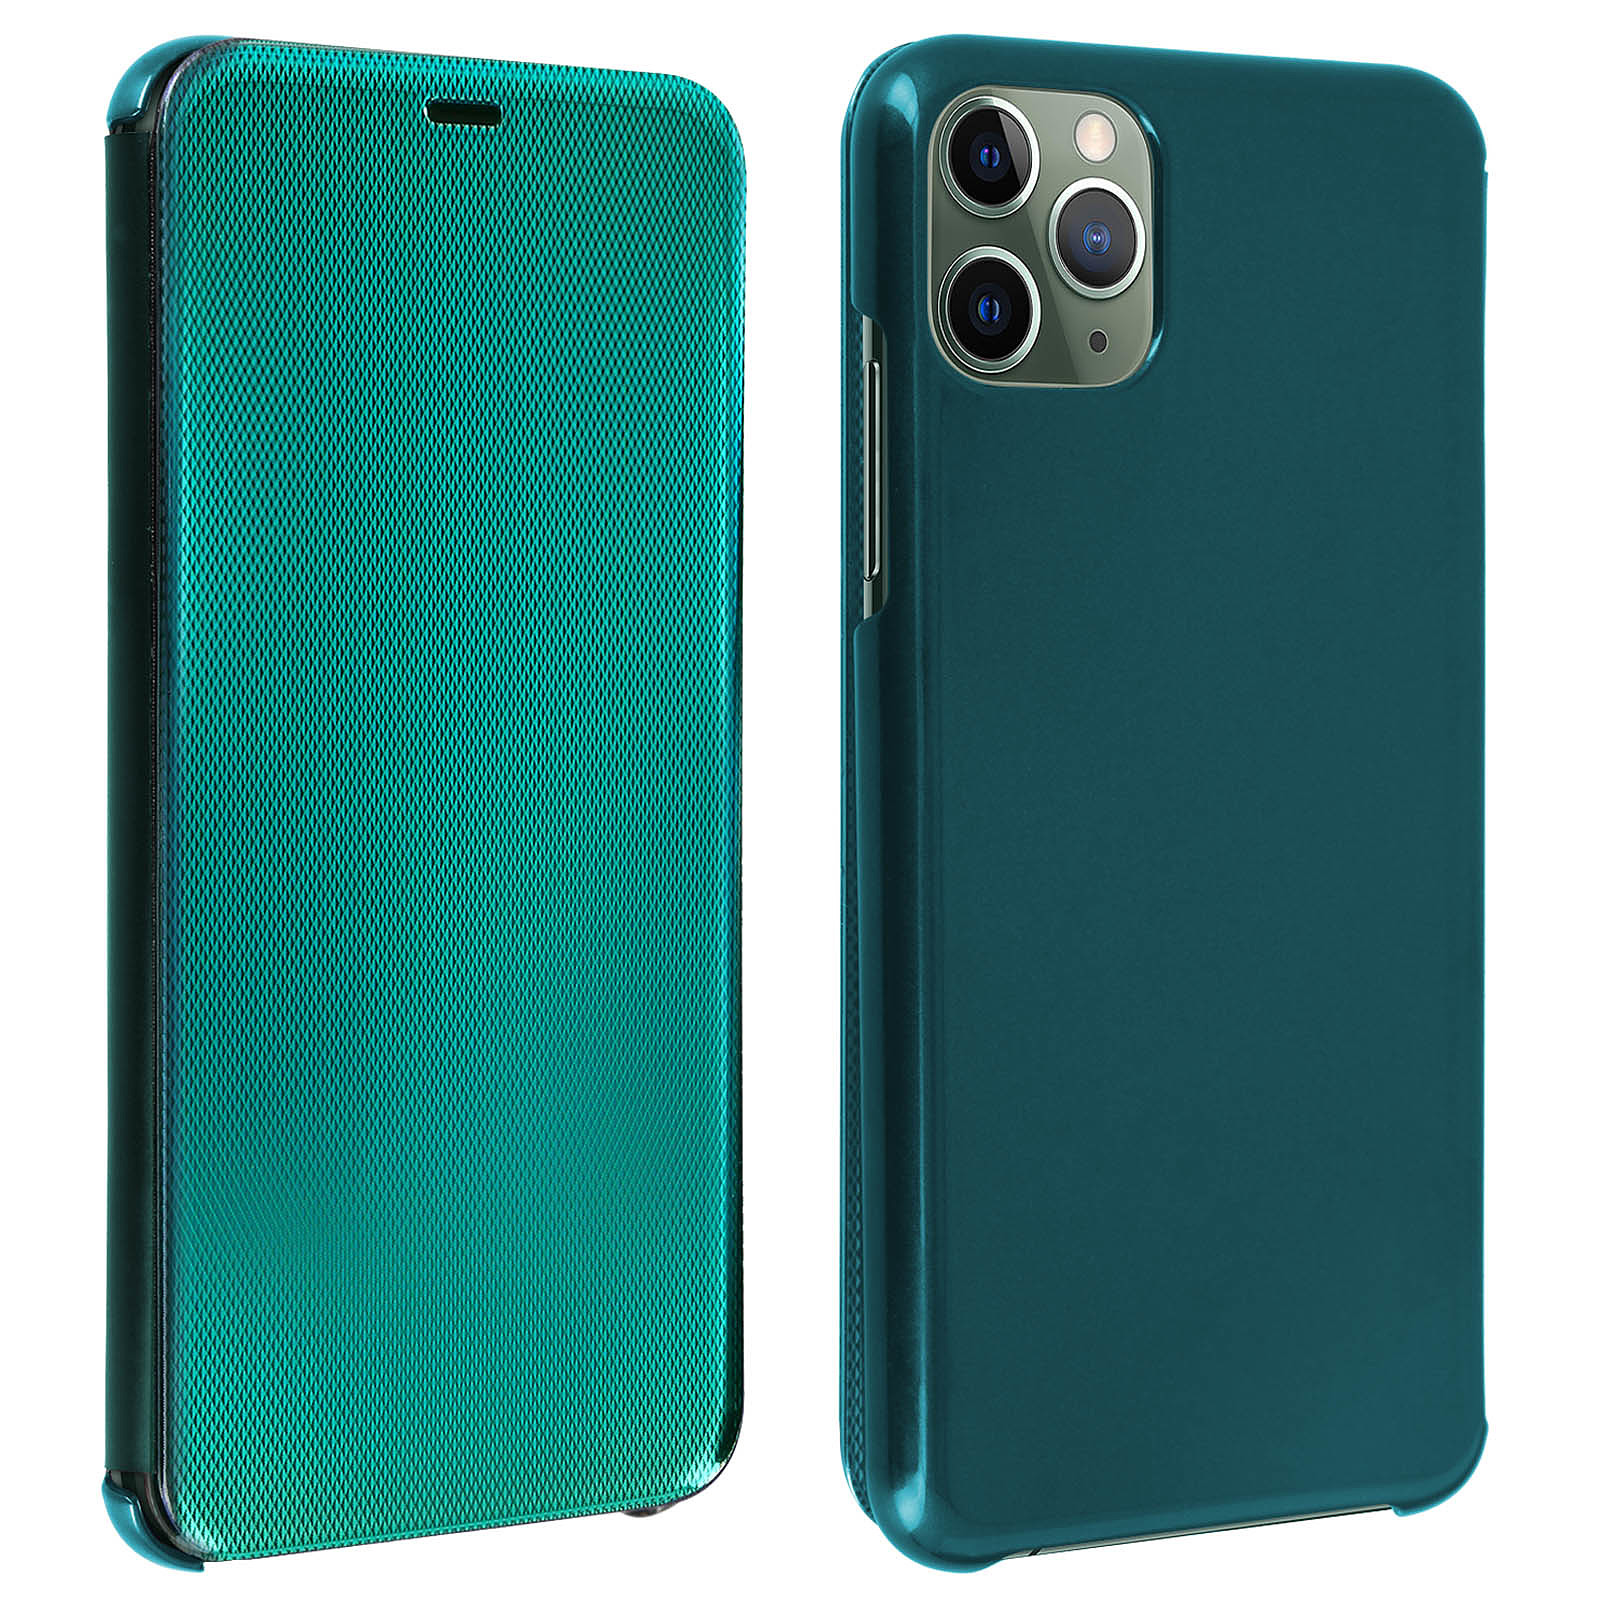 Avizar Etui folio Vert pour Apple iPhone 11 Pro Max